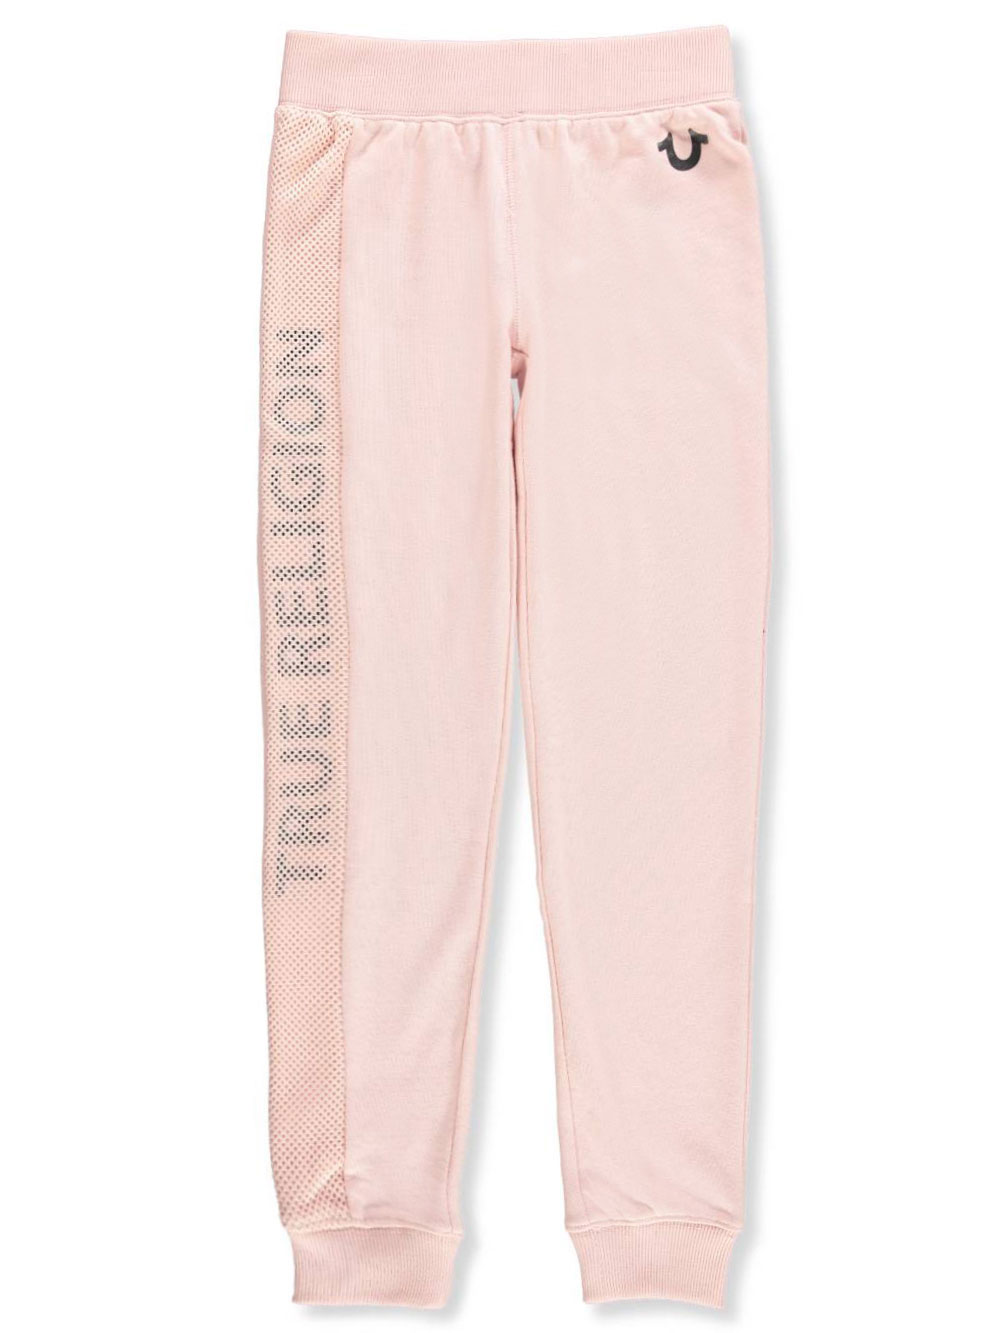 1206879e6 Girls  Joggers by True Religion in black and dusty pink from ...